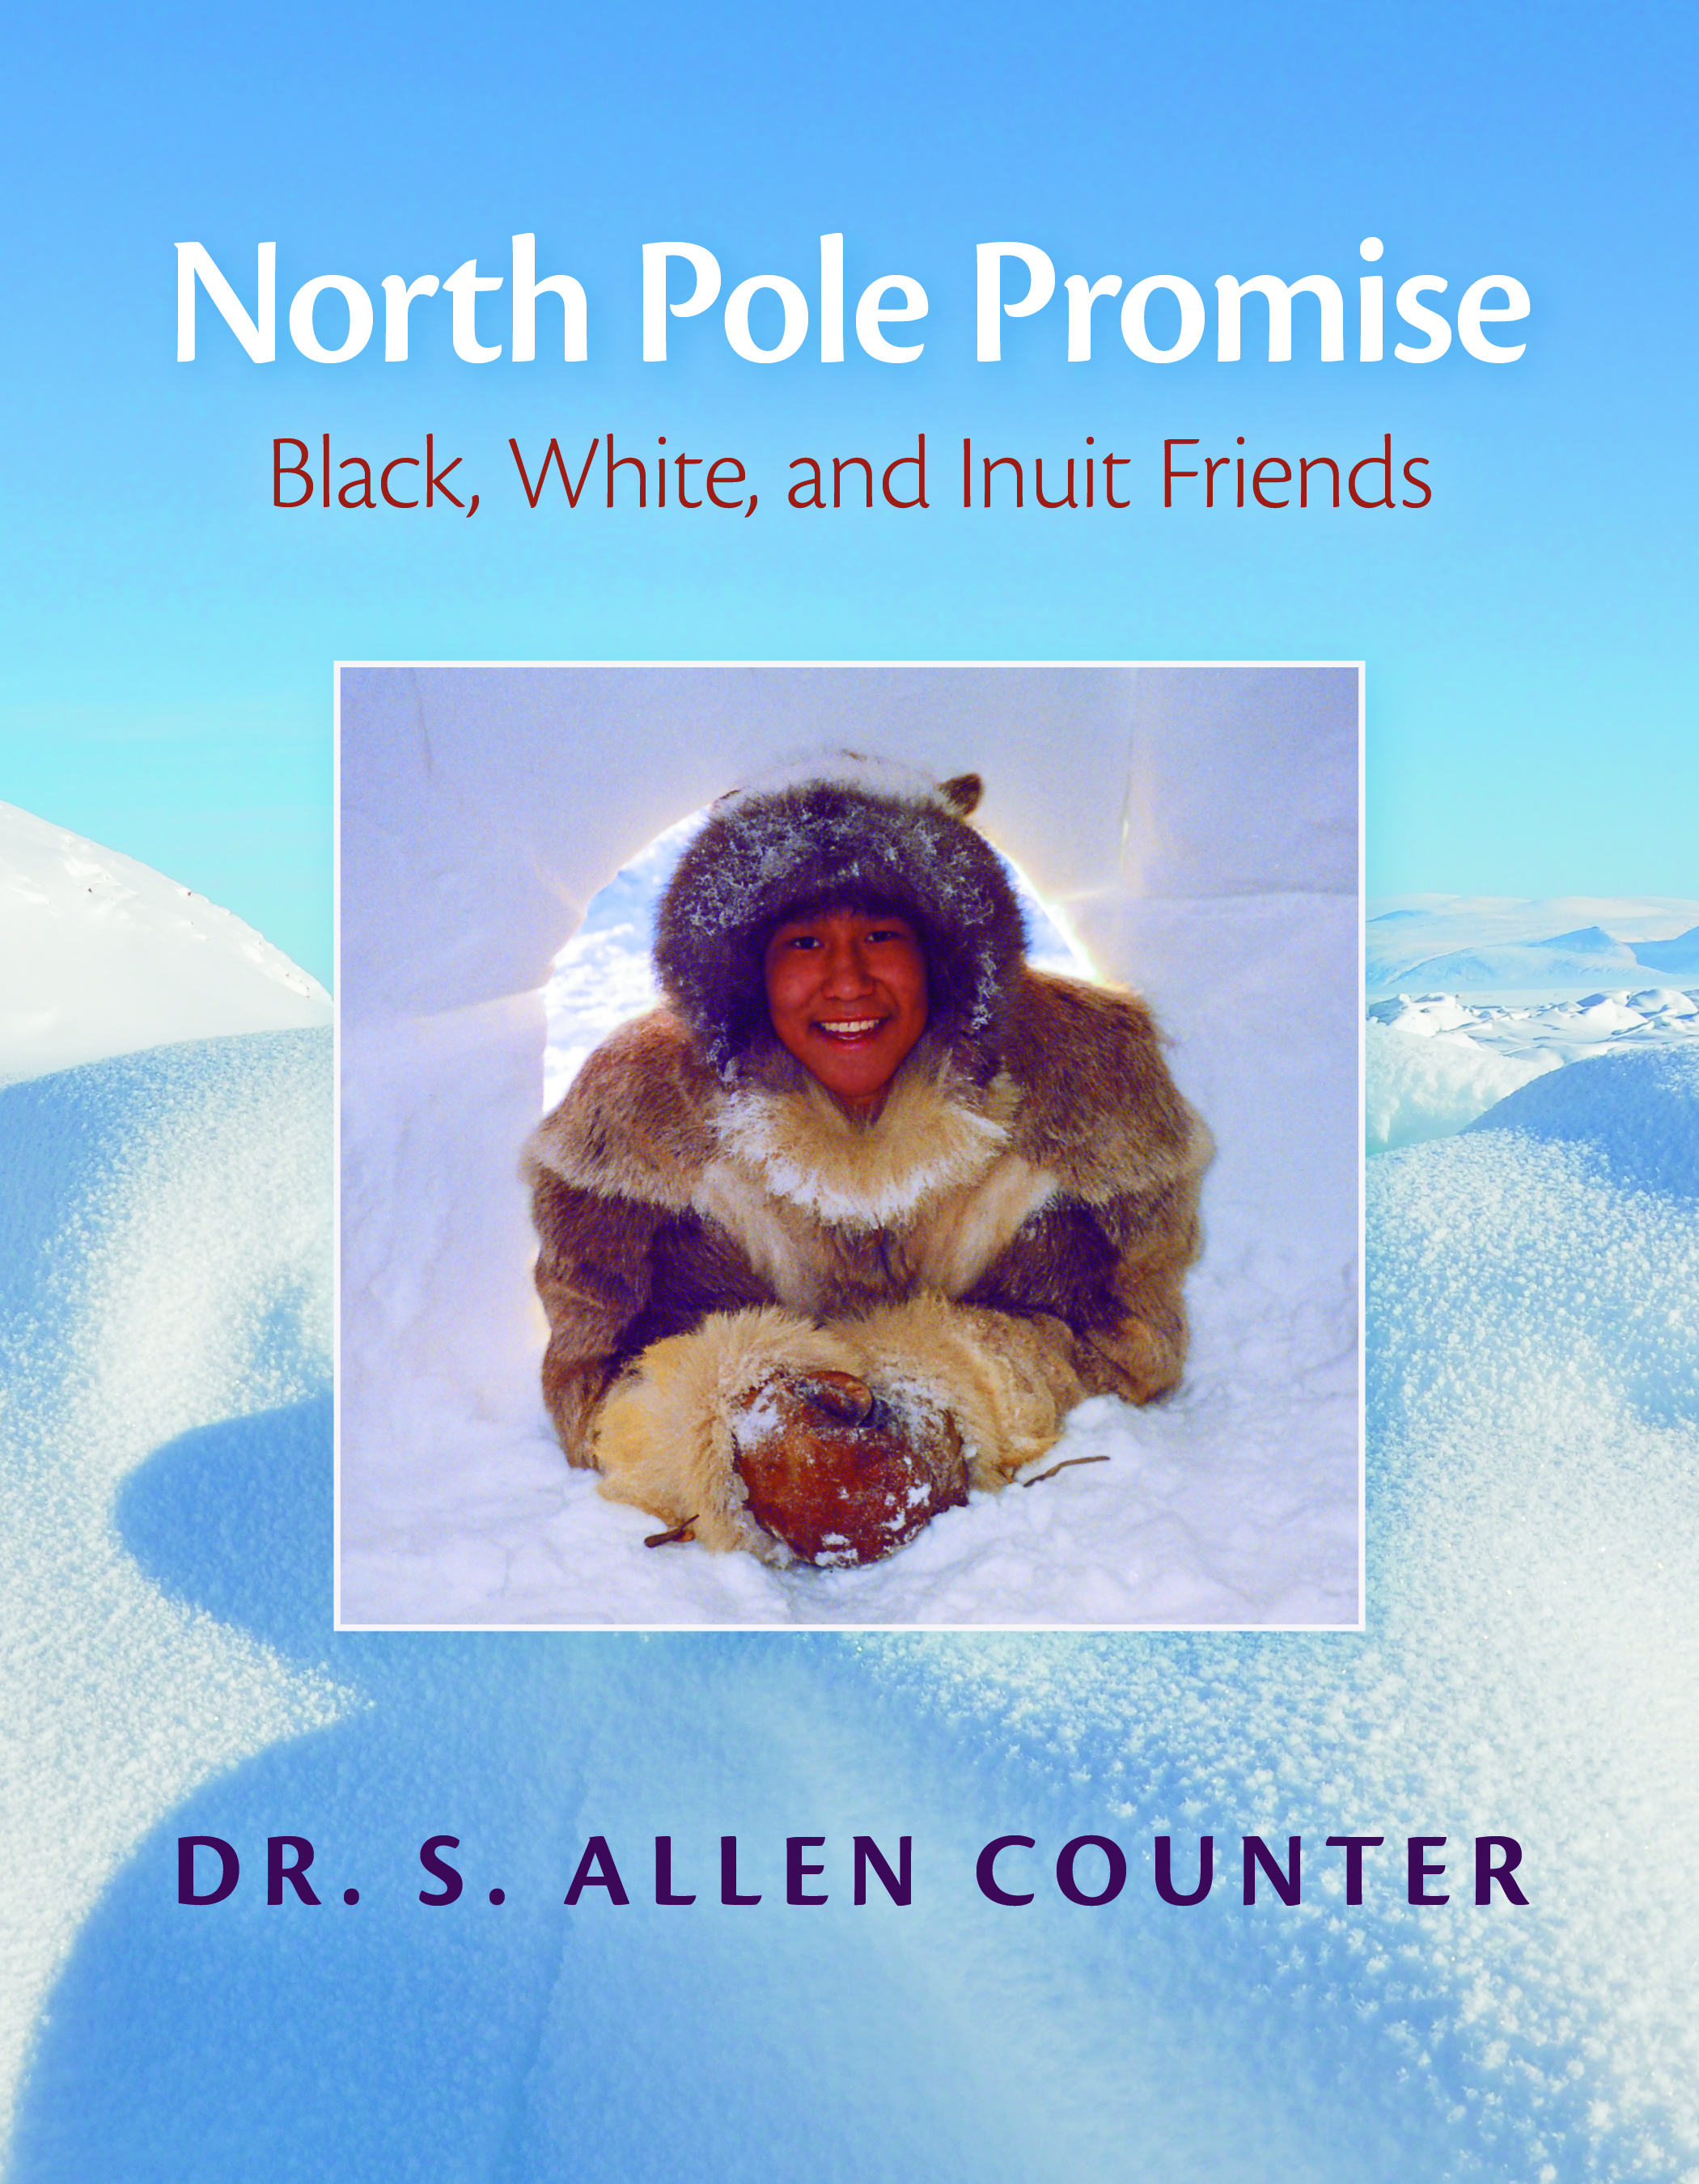 North Pole Promise